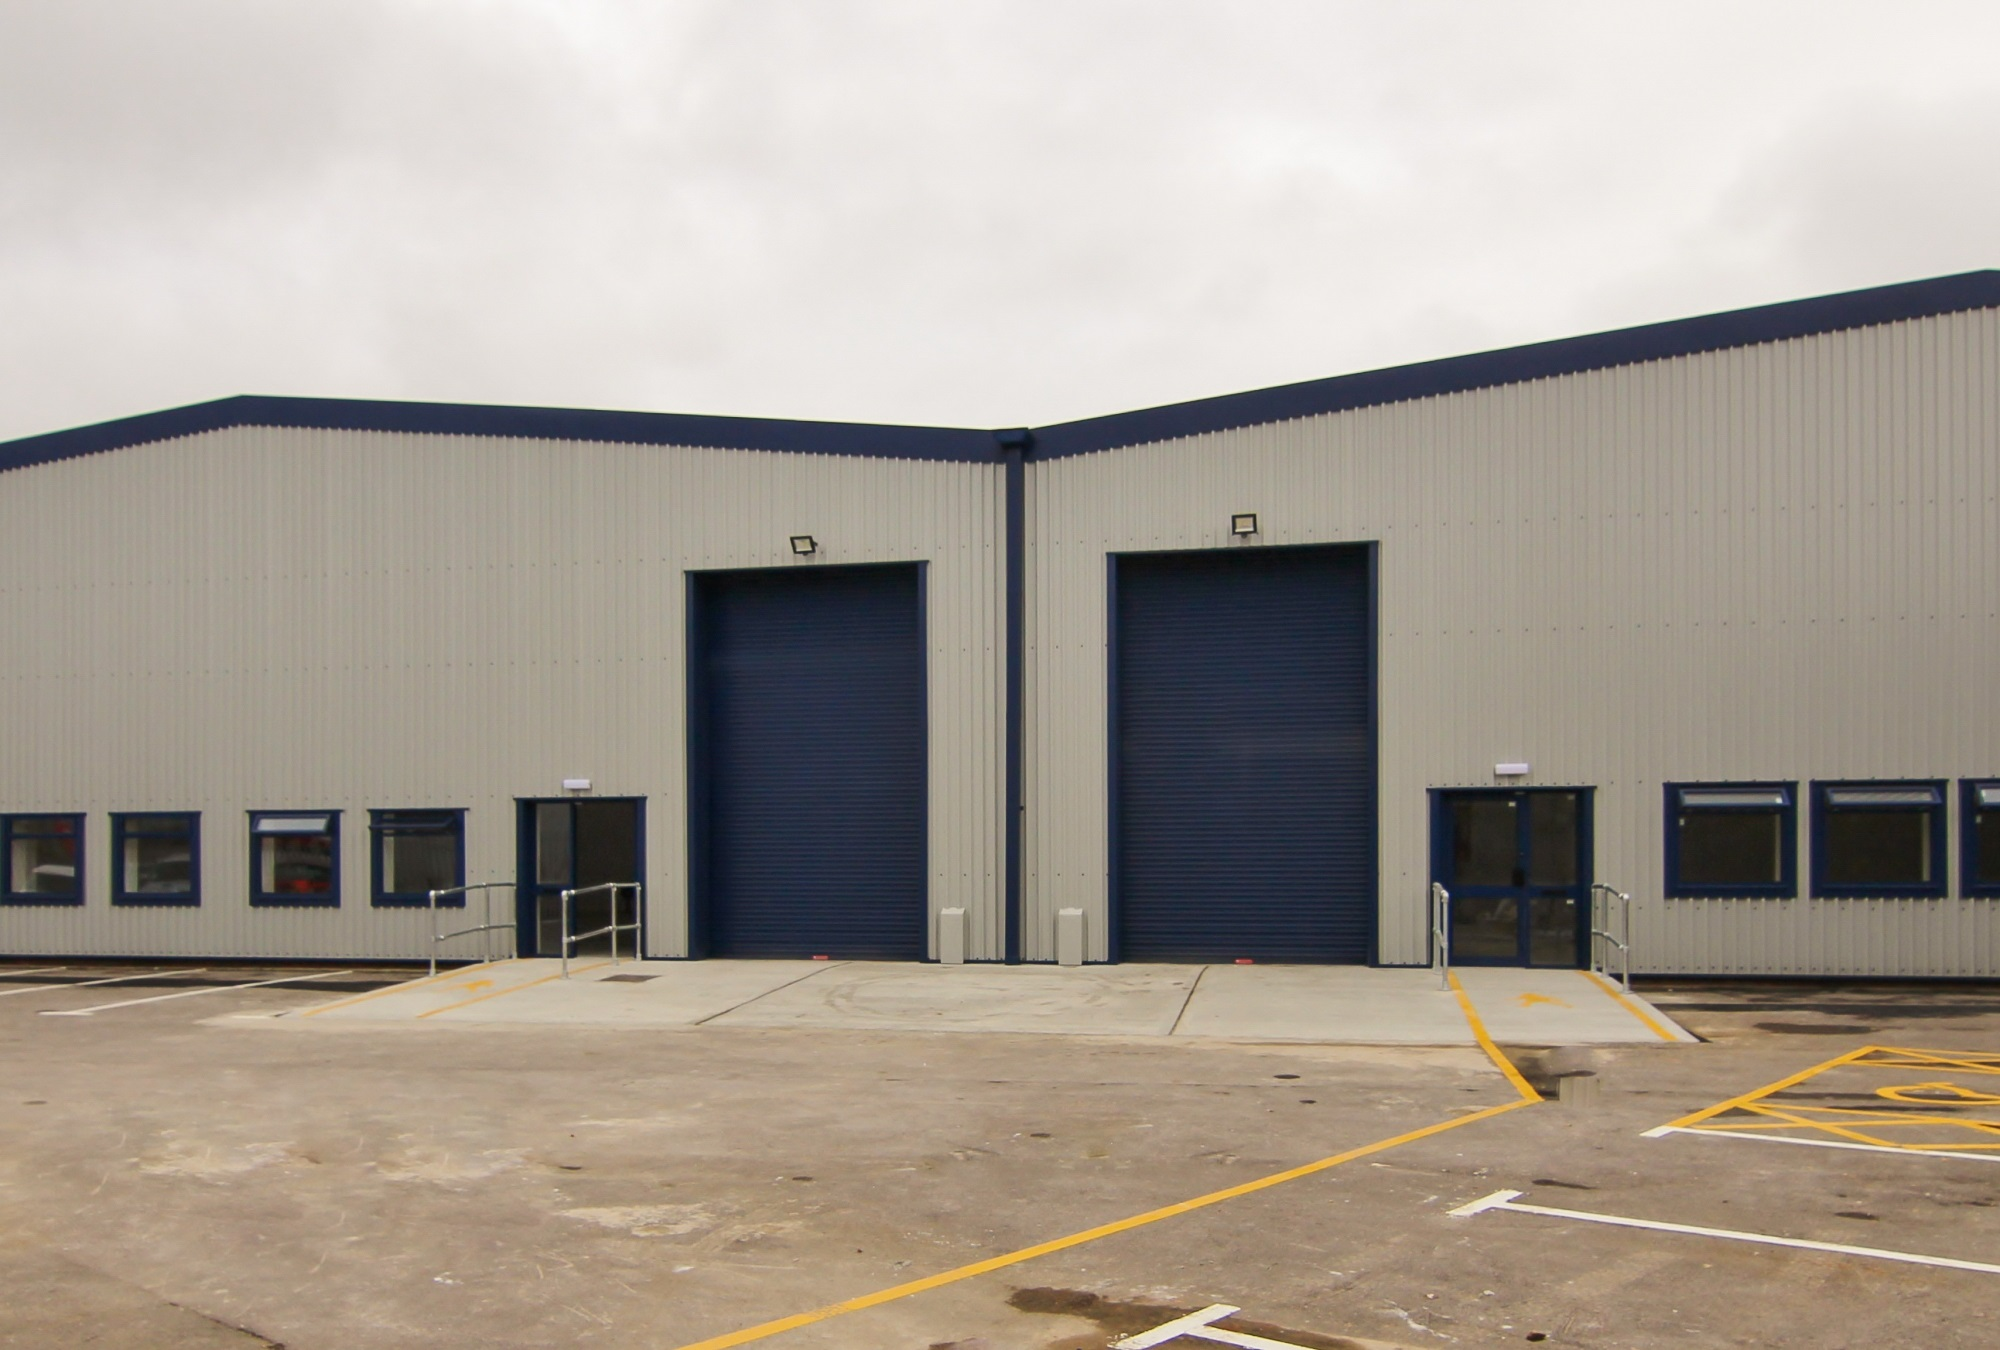 warehouse with two large blue doors